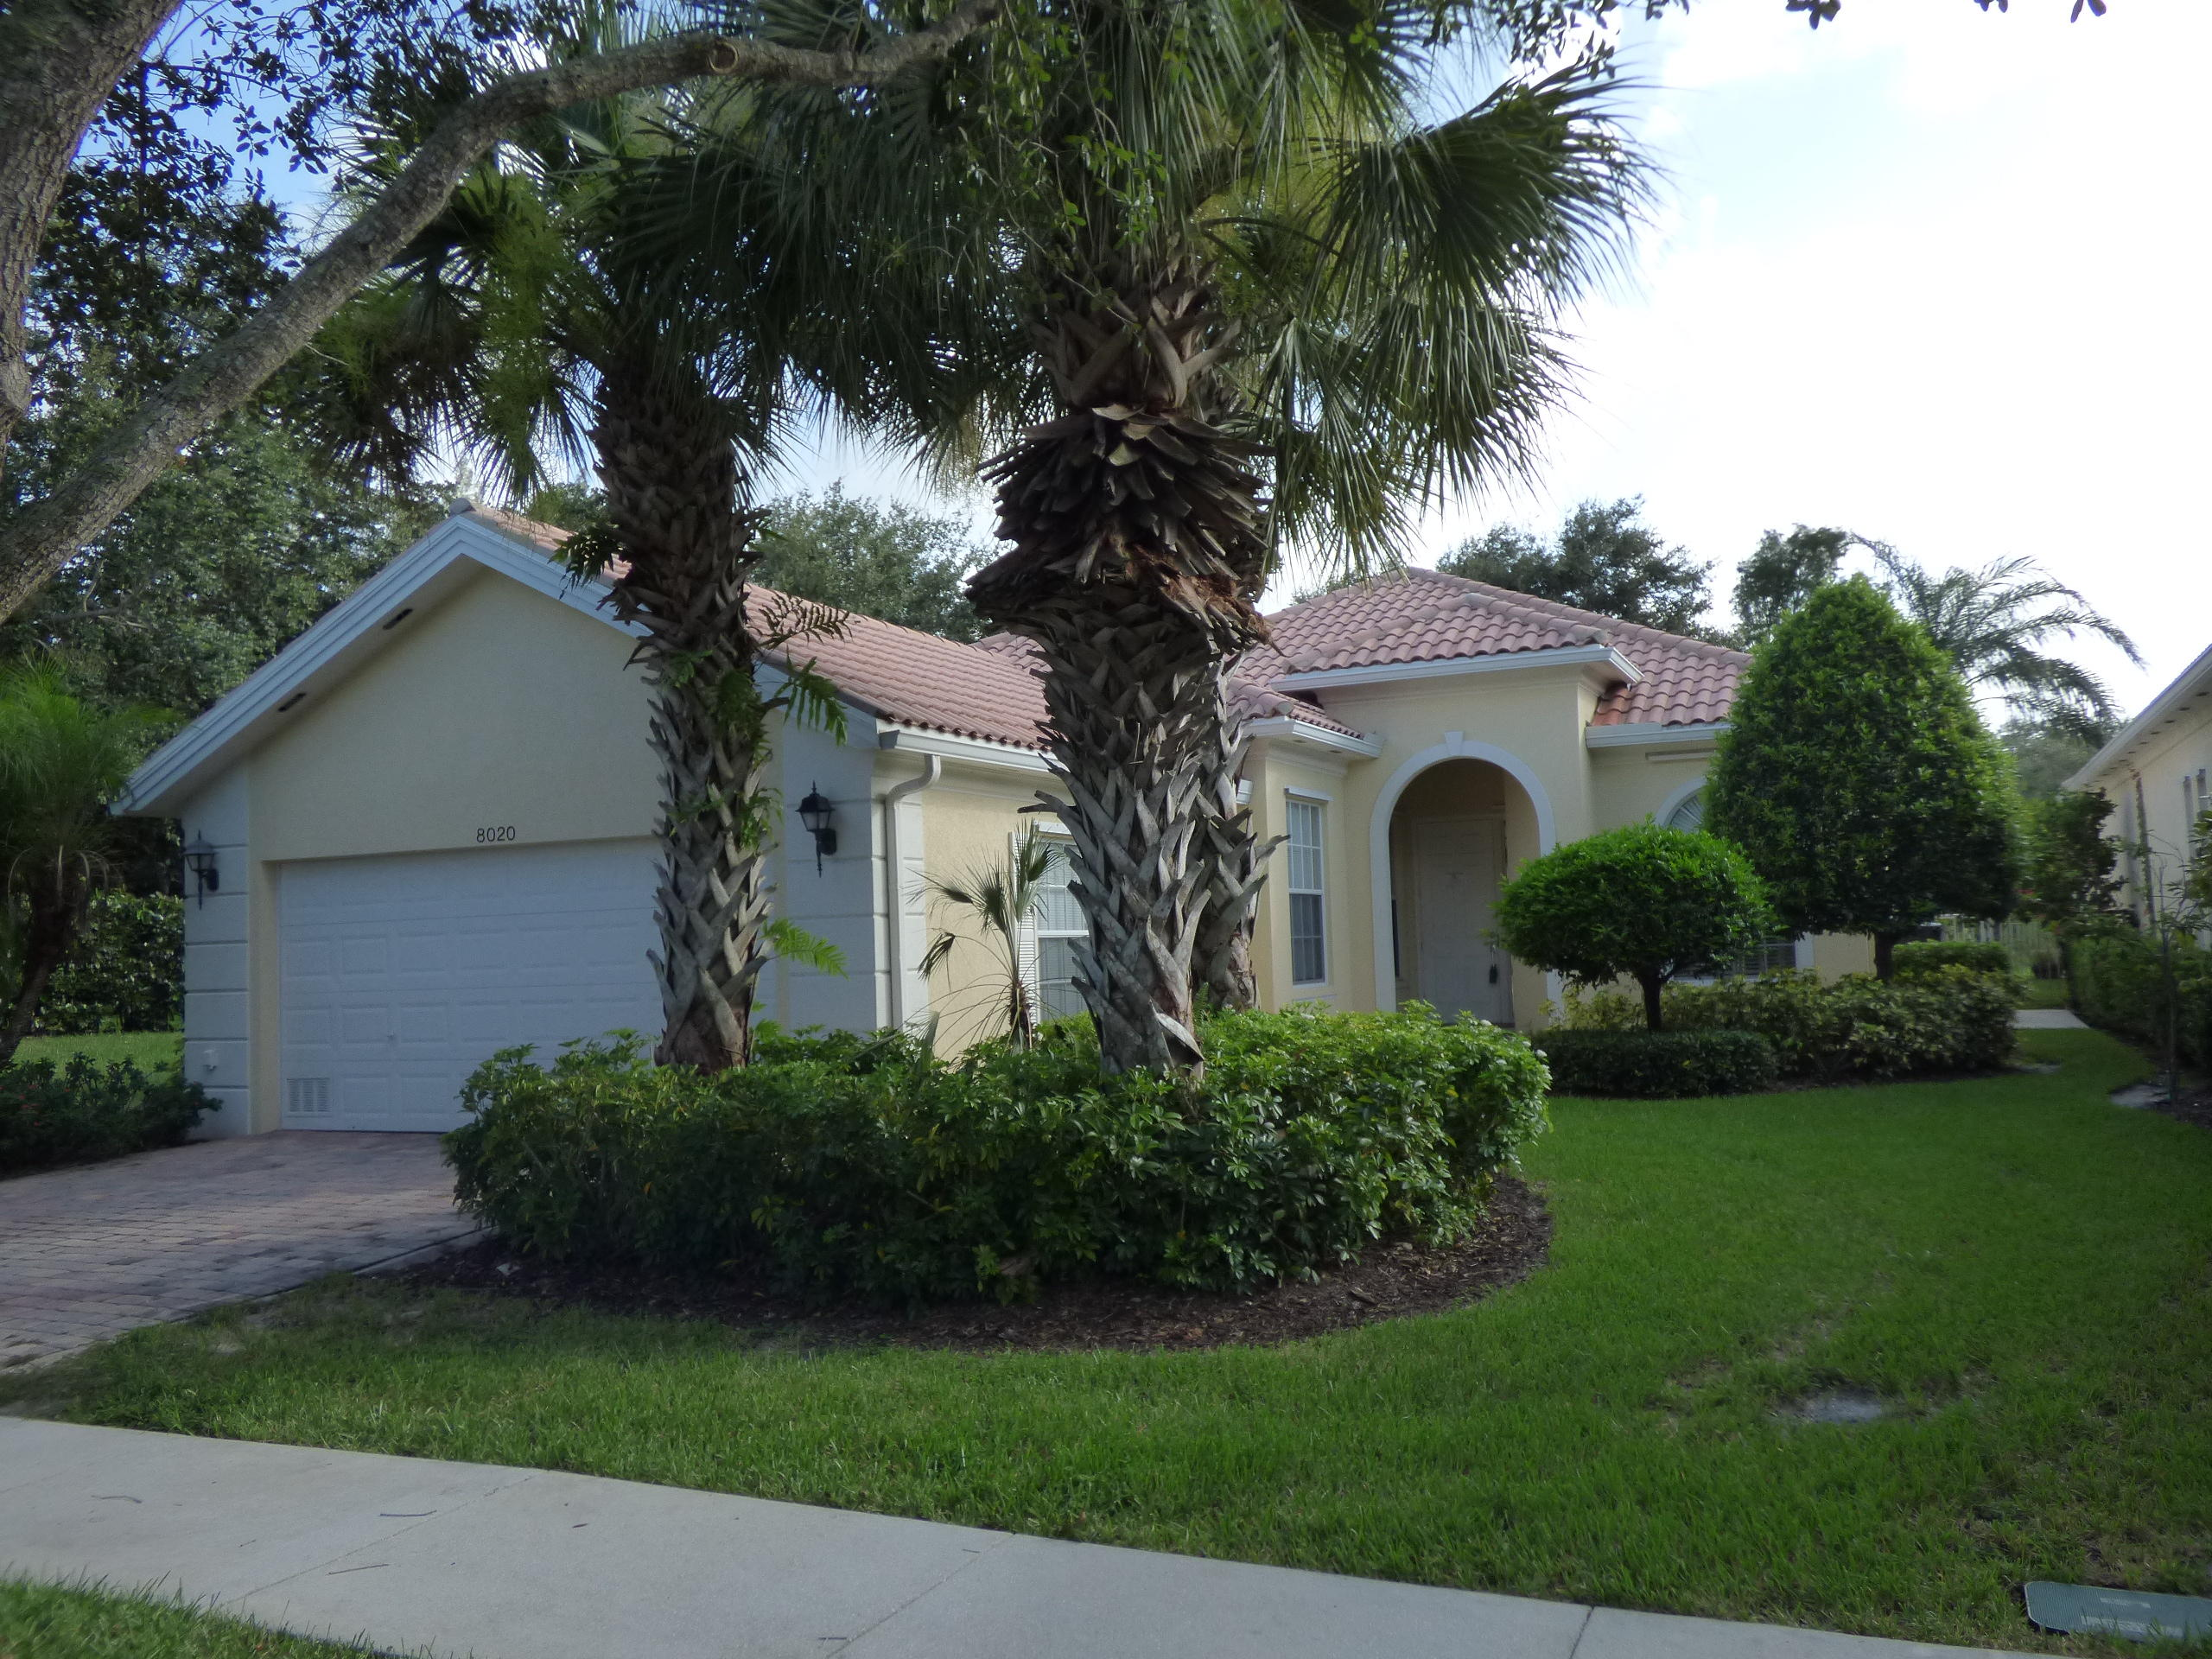 Home for sale in Village Walk of Wellington Wellington Florida